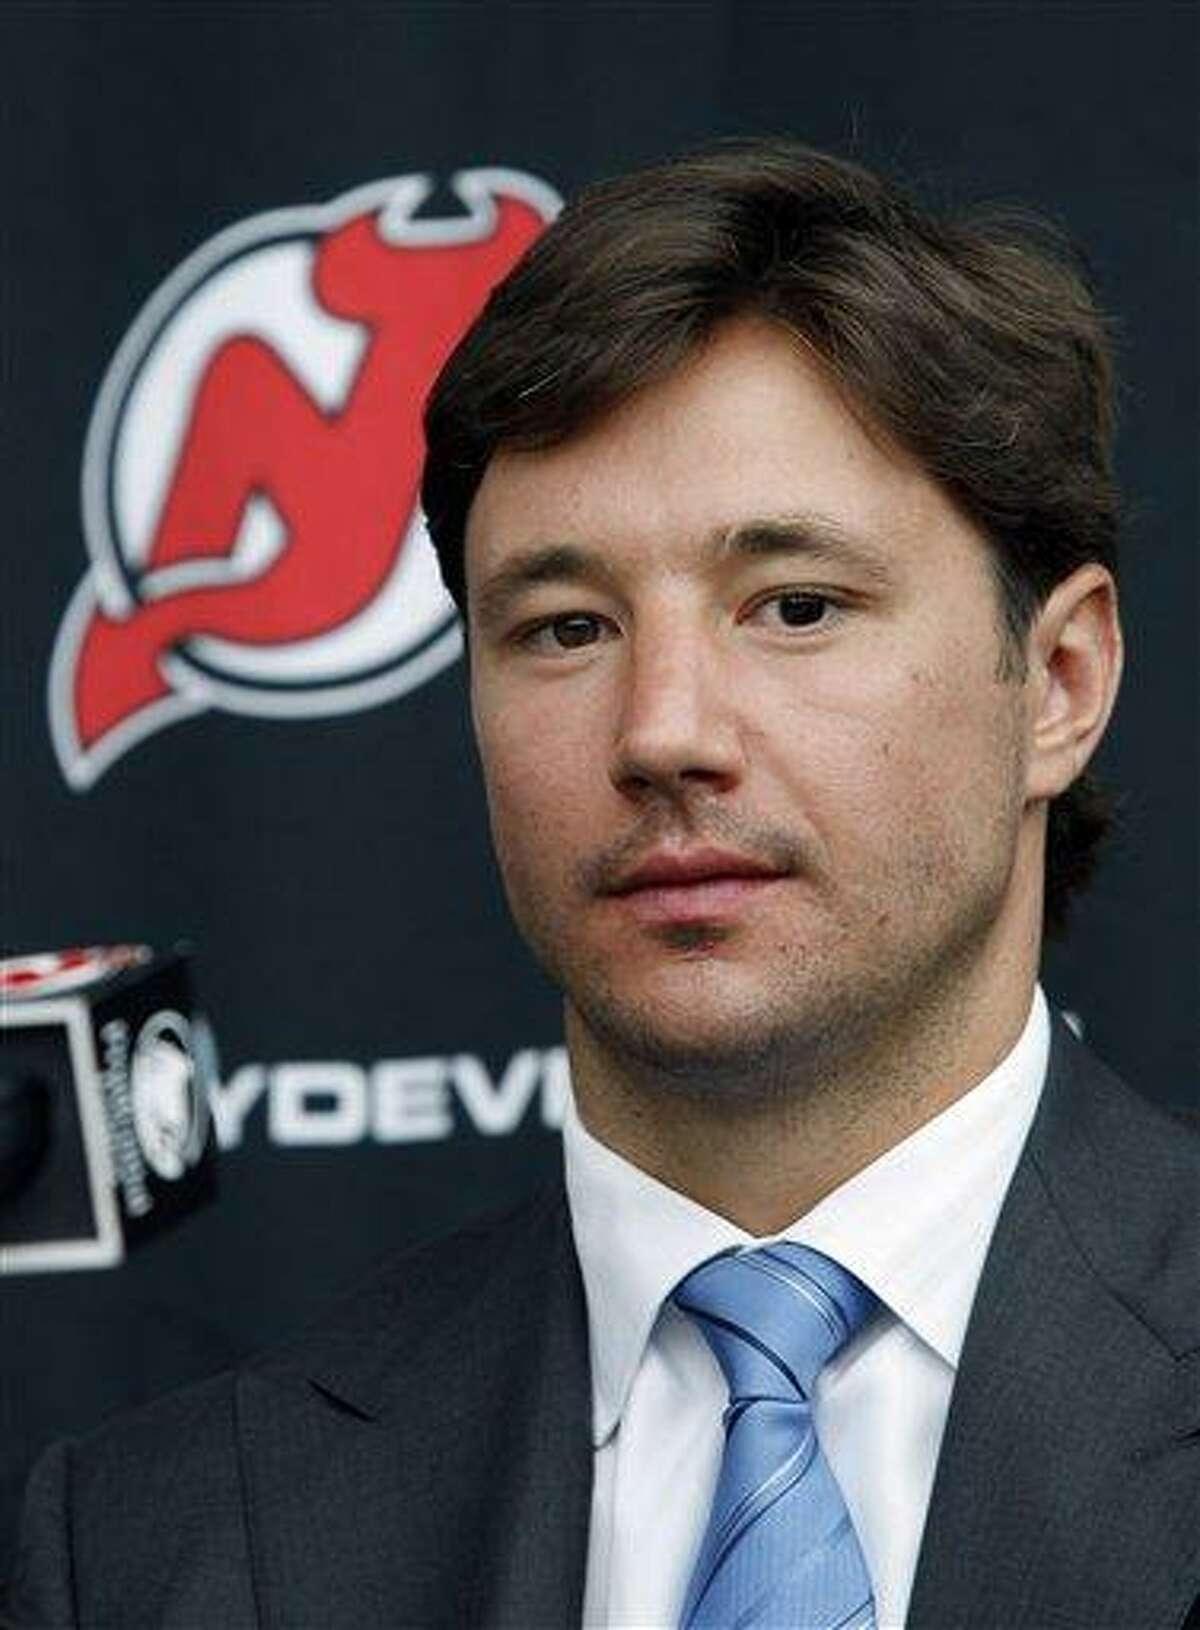 New Jersey Devils star forward Ilya Kovalchuk, of Russia, listens to a reporters question during a news conference in Newark, N.J., Tuesday, July 20, 2010.